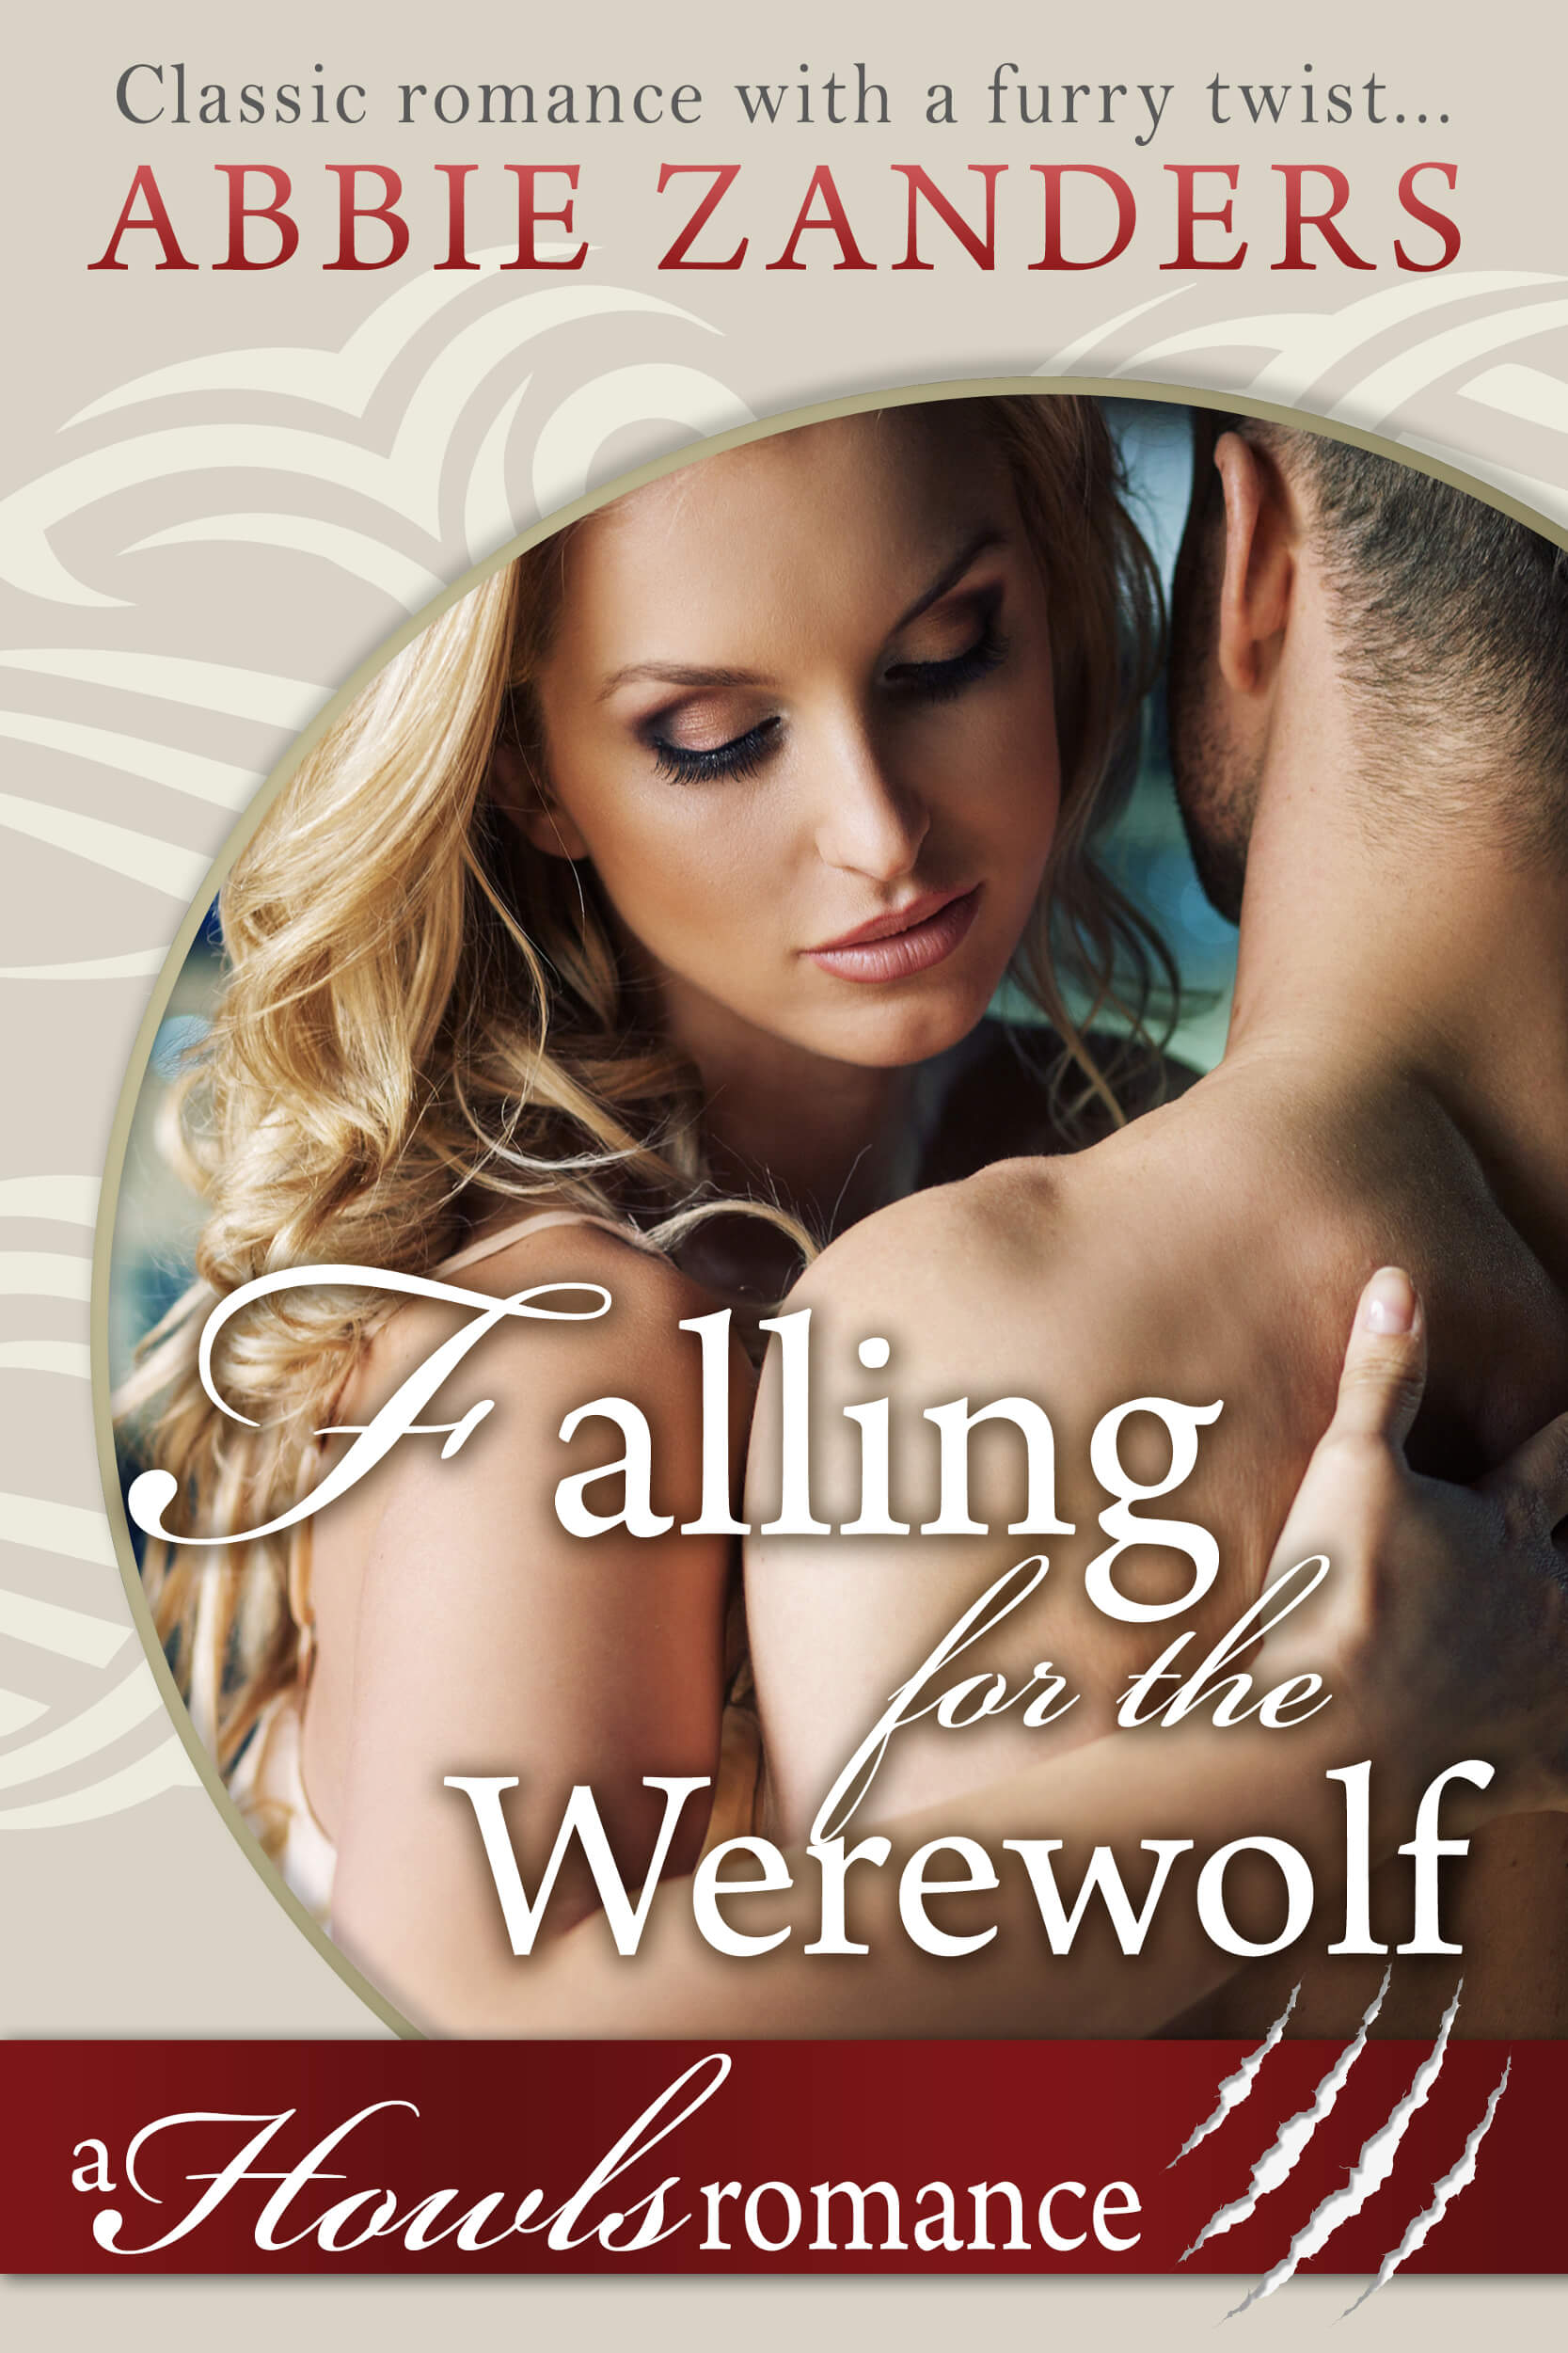 howlsromance_template azr Falling for the Werewolf 1667×2500